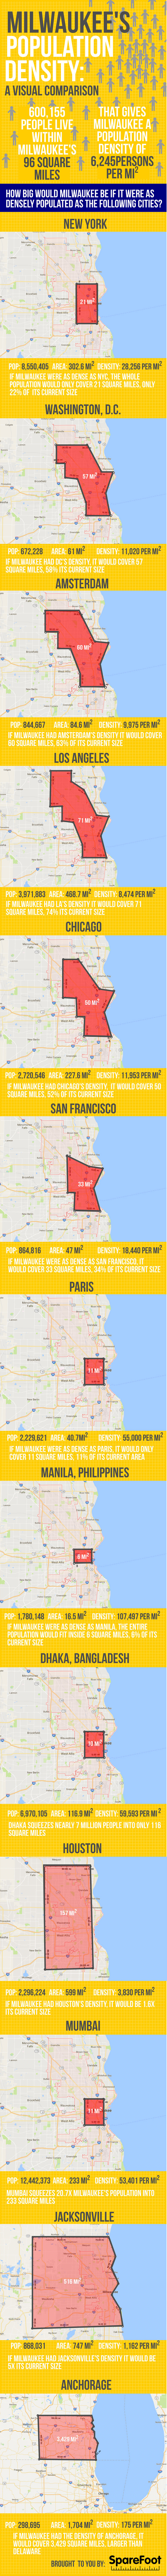 Infographic: How the state population fits into Milwaukee